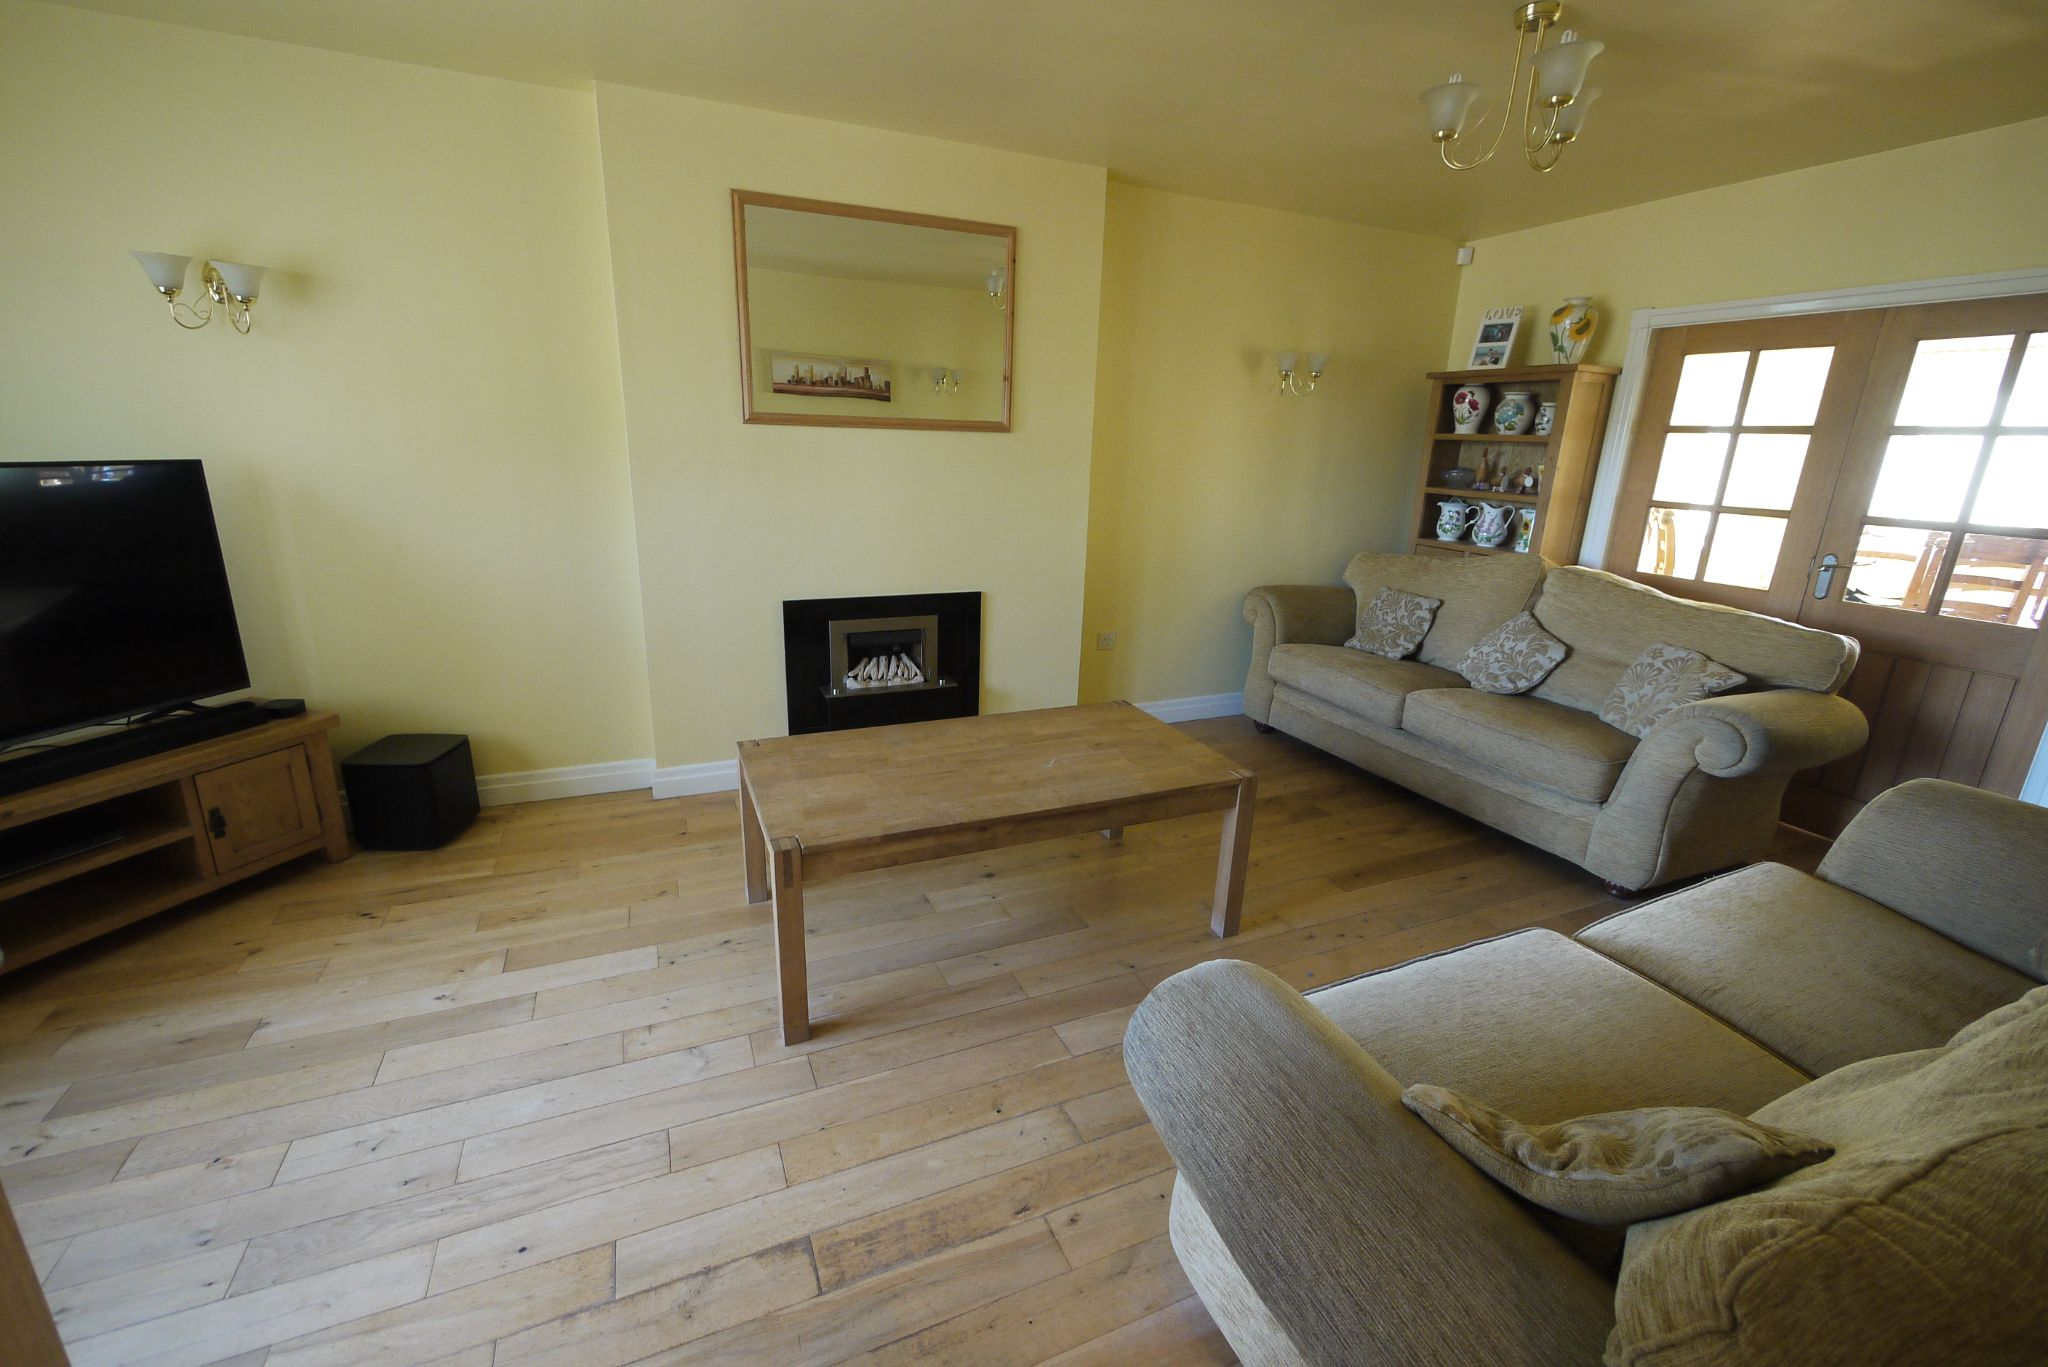 5 bedroom detached house For Sale in Brighouse - Photograph 2.